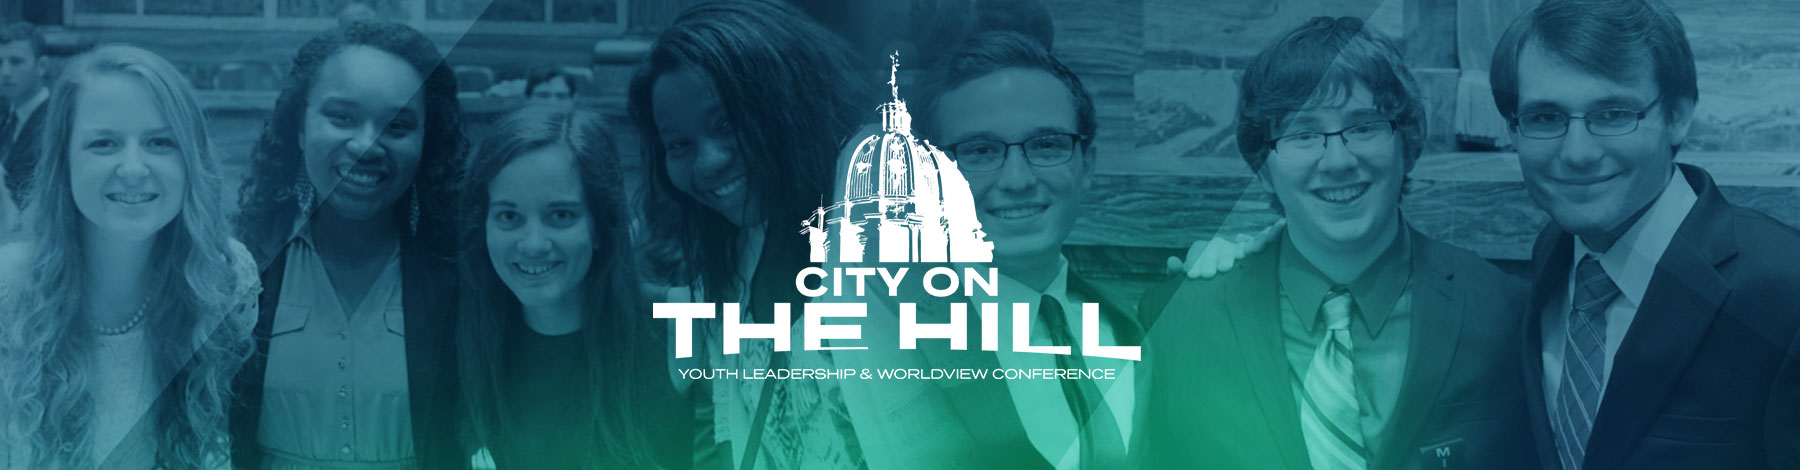 City-on-the-Hill-2-11-15